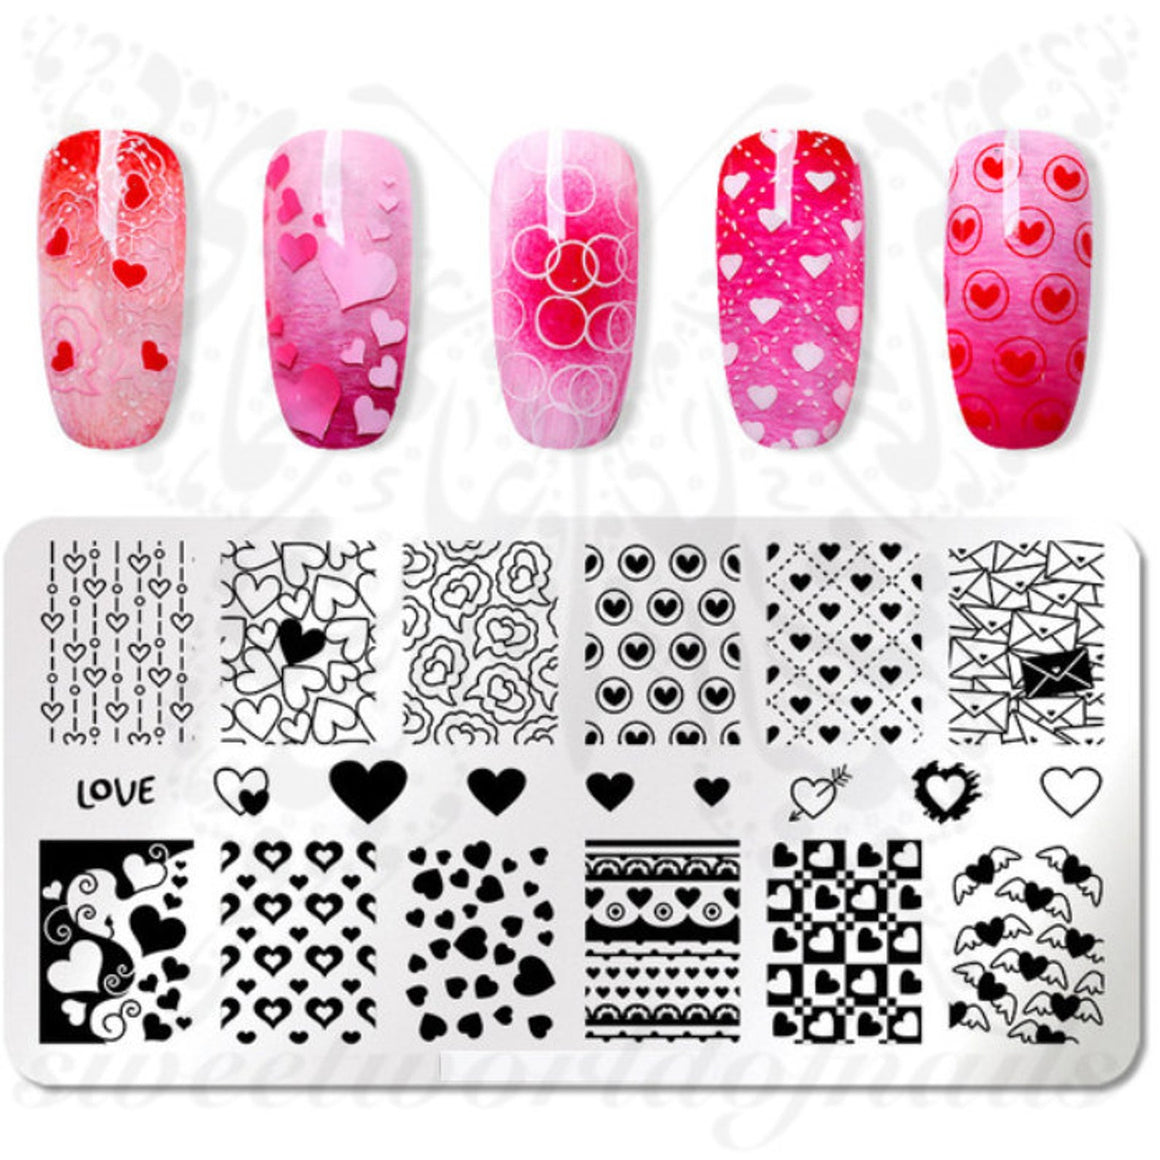 Valentine's Day Nail Art Stamping Plate